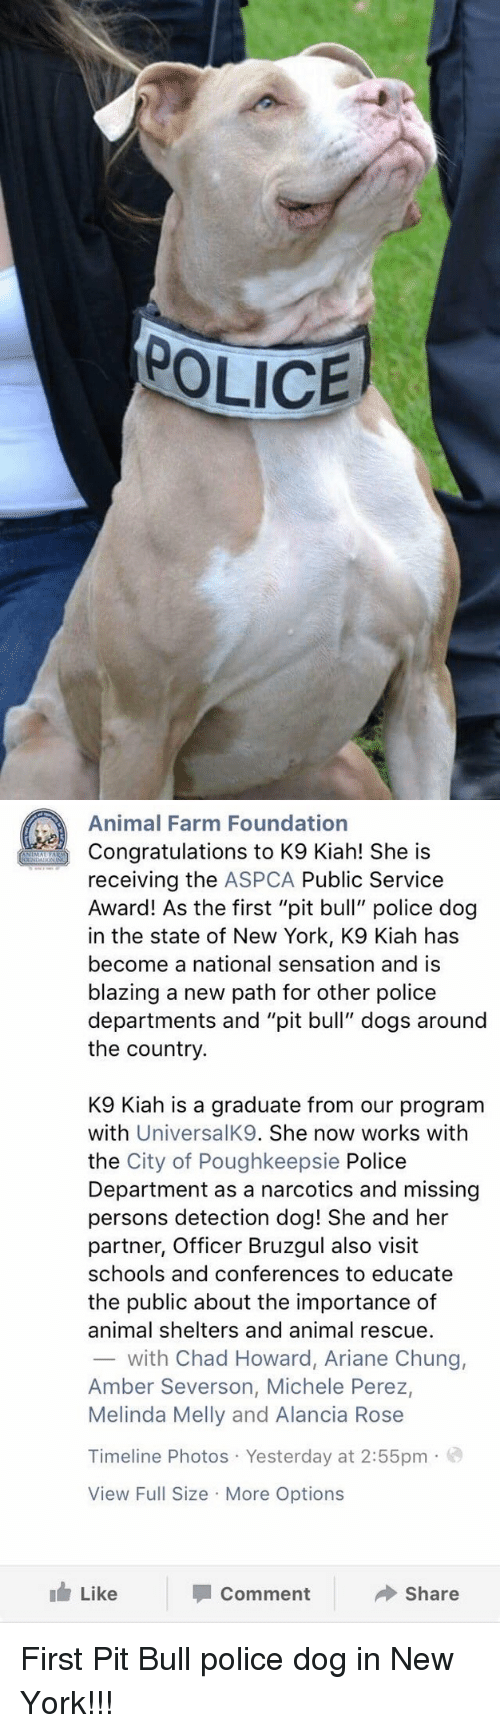 """Aspca: POLICE   Animal Farm Foundation  Congratulations to K9 Kiah! She is  receiving the ASPCA Public Service  Award! As the first """"pit bull"""" police dog  in the state of New York, K9 Kiah has  become a national sensation and is  blazing a new path for other police  departments and """"pit bull"""" dogs around  the country.  K9 lah is a graduate from our program  with  UniversalK9. She now works with  the City of Poughkeepsie Police  Department as a narcotics and missing  persons detection dog! She and her  partner, Officer Bruzgul also visit  schools and conferences to educate  the public about the importance of  animal shelters and animal rescue.  with Chad Howard, Ariane Chung,  Amber Severson, Michele Perez,  Melinda Melly and Alancia Rose  Timeline Photos Yesterday at 2:55pm  o  View Full Size More Options  Like  Share  Comment First Pit Bull police dog in New York!!!"""